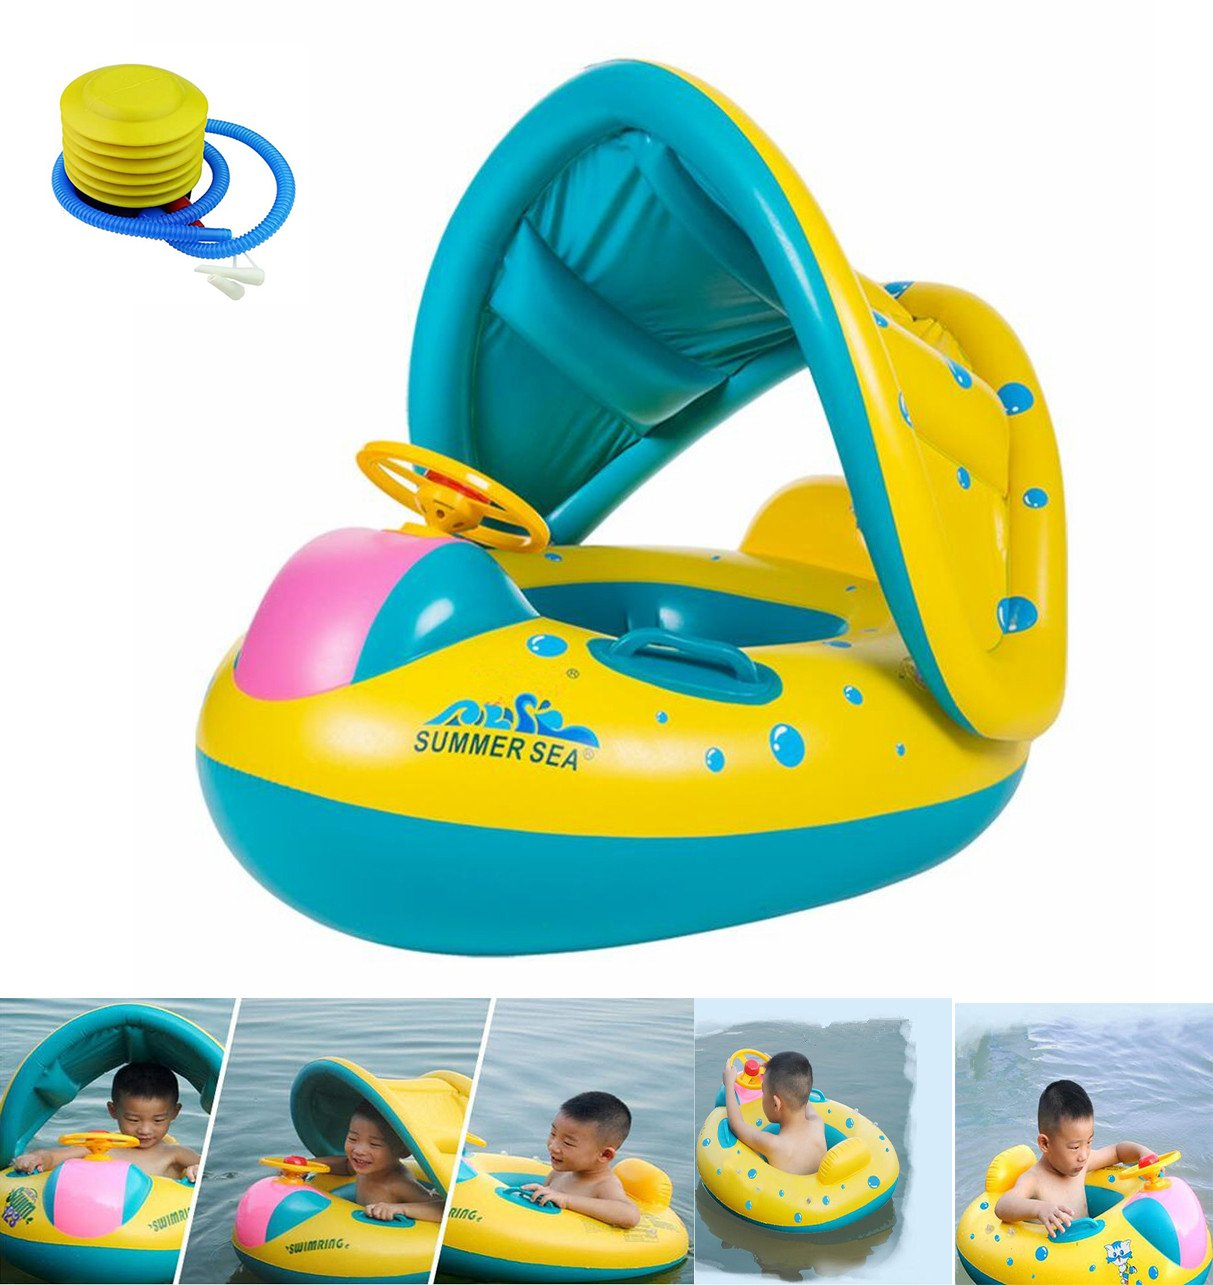 HBONE Inflatable Baby Pool Float Swimming Ring Baby Seat Boat Yacht, Floating Toy with Sunshade and Air Pump Safty for Age 6-48 Months Toddler Kids Children